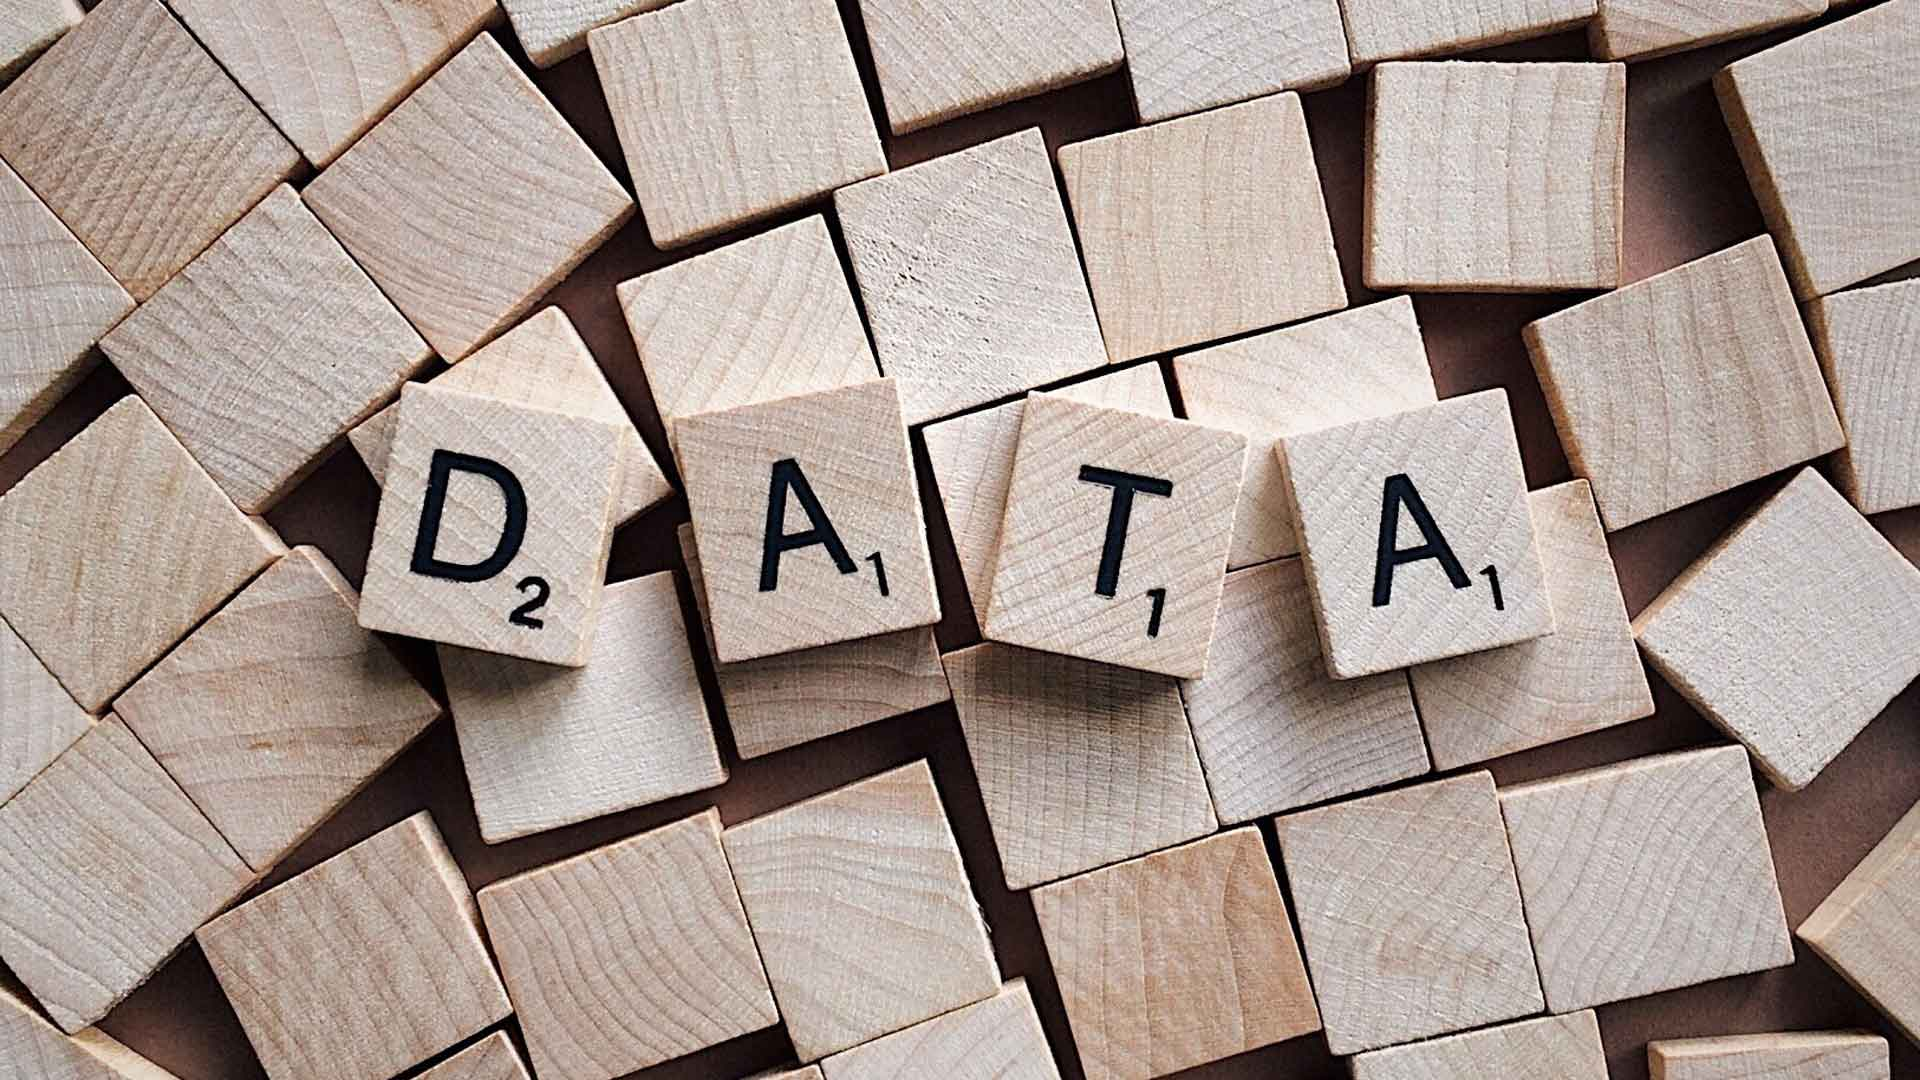 Manage data better through Extra Smart's database management services